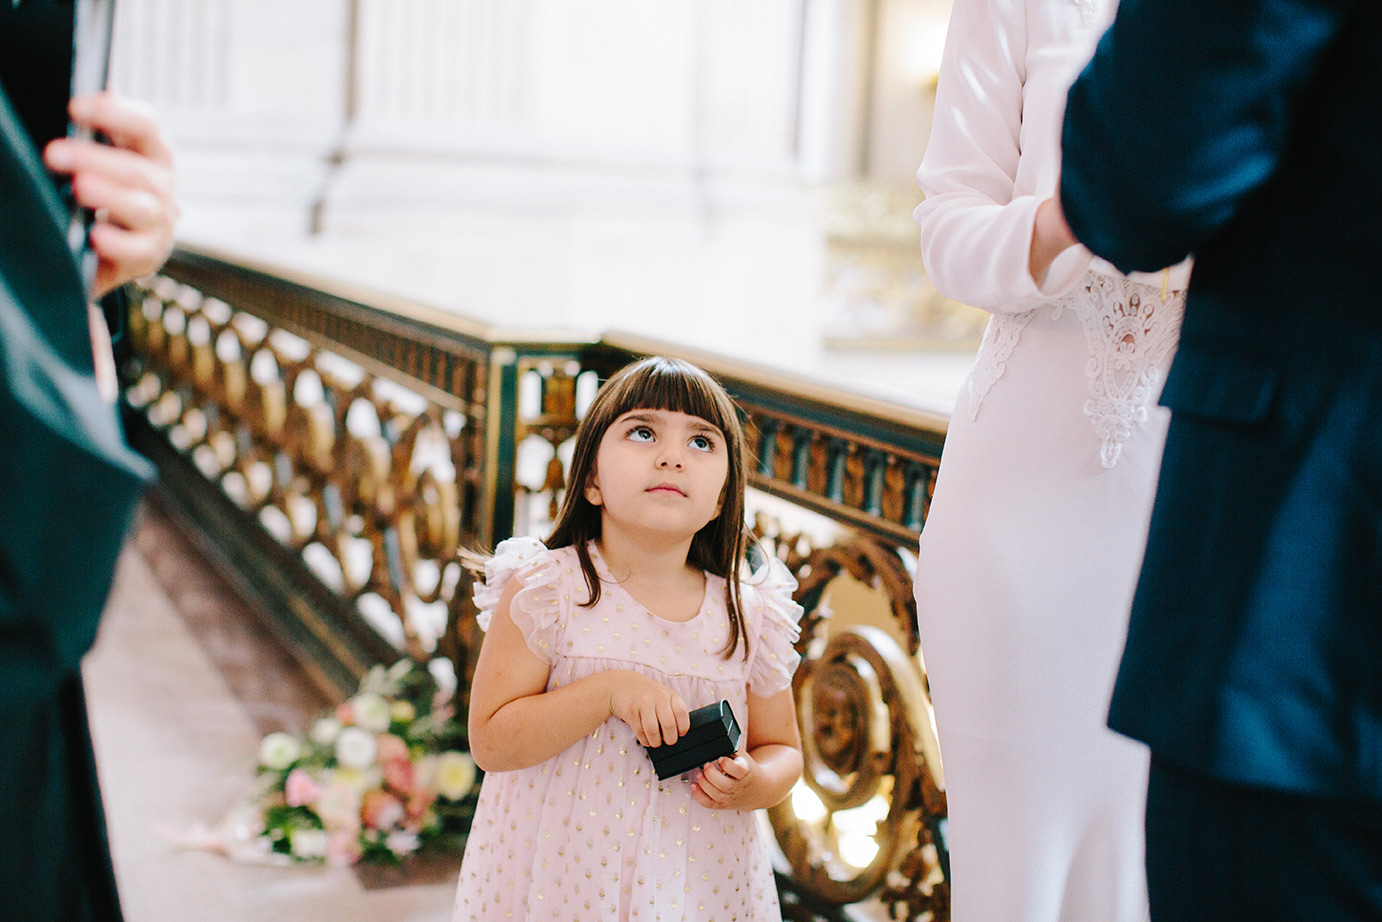 This little ringbearer couldn't wait to see her parents get married!